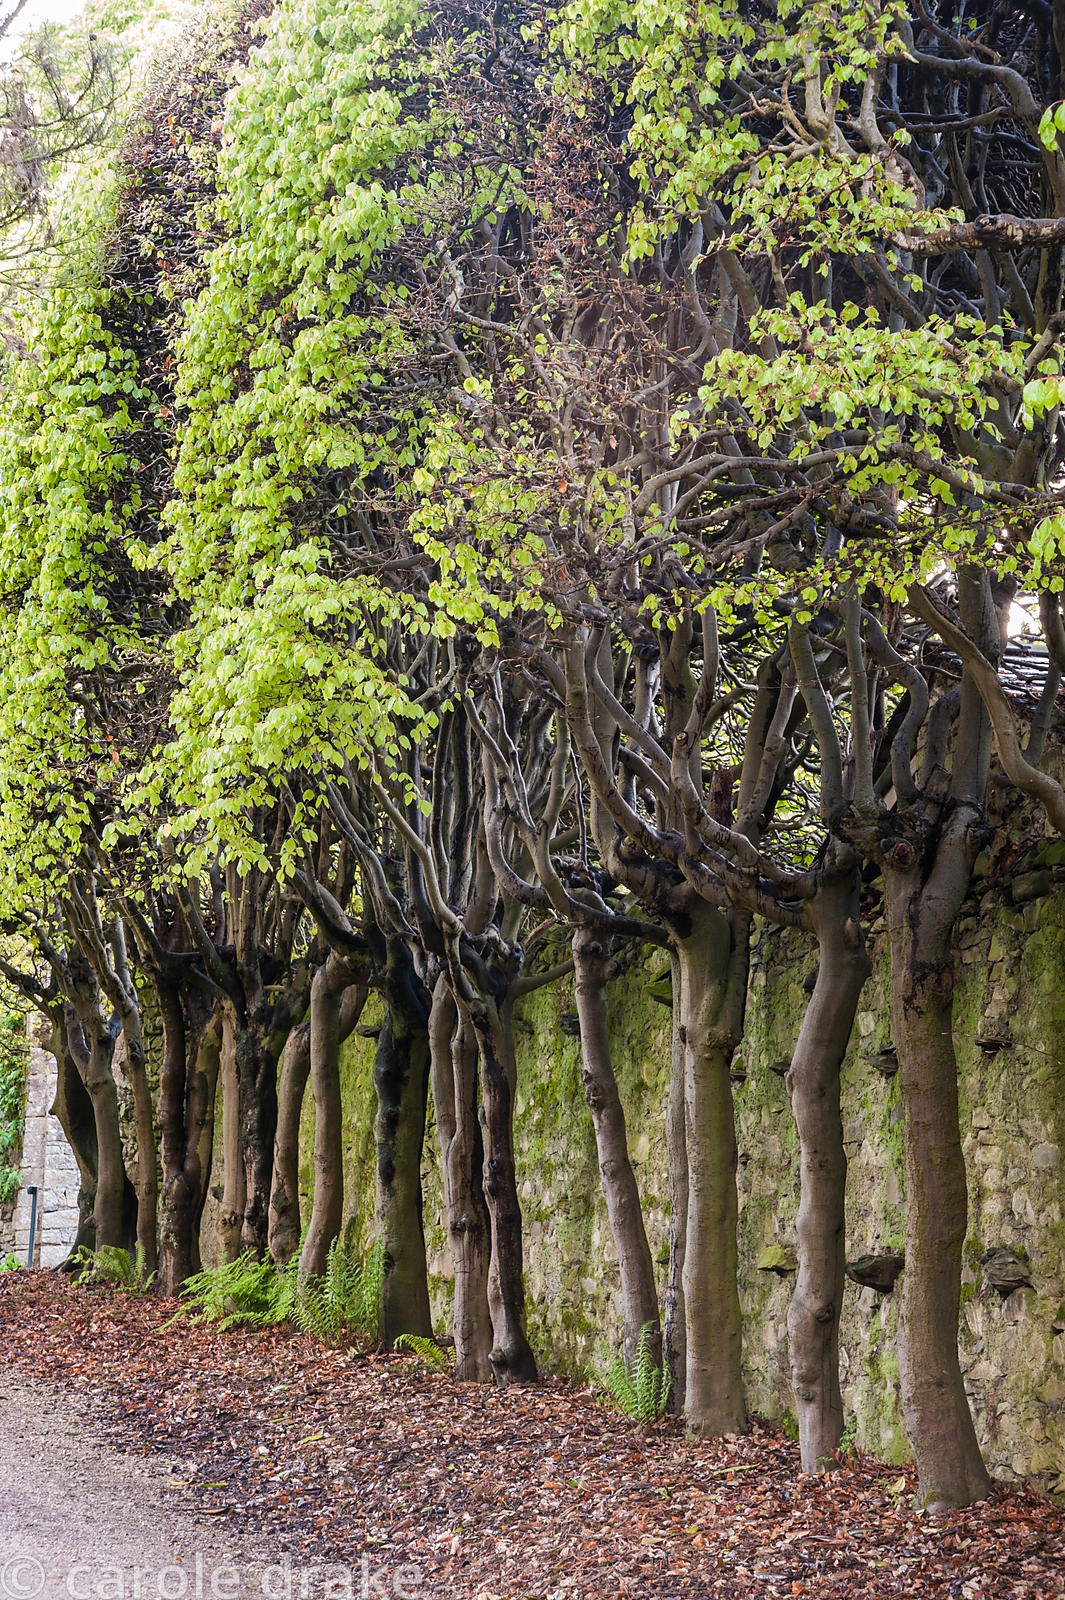 Beech trees trained into an elevated hedge. Holker Hall, Grange over Sands, Cumbria, UK